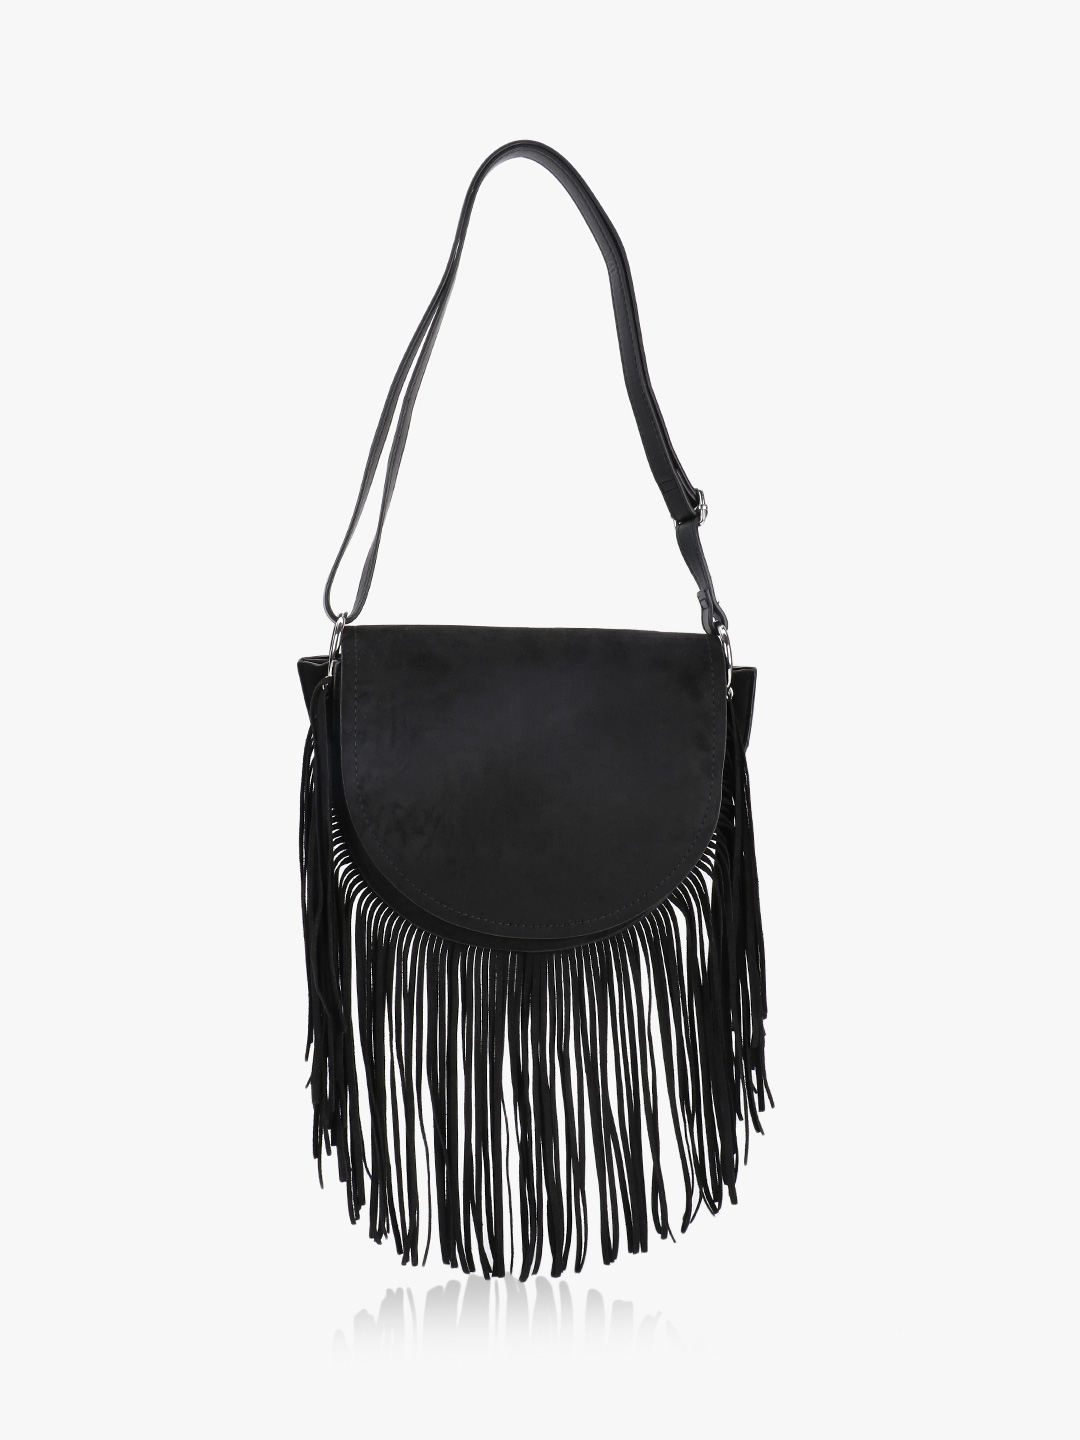 New Look Black Suede Fringe Sling Bag 1